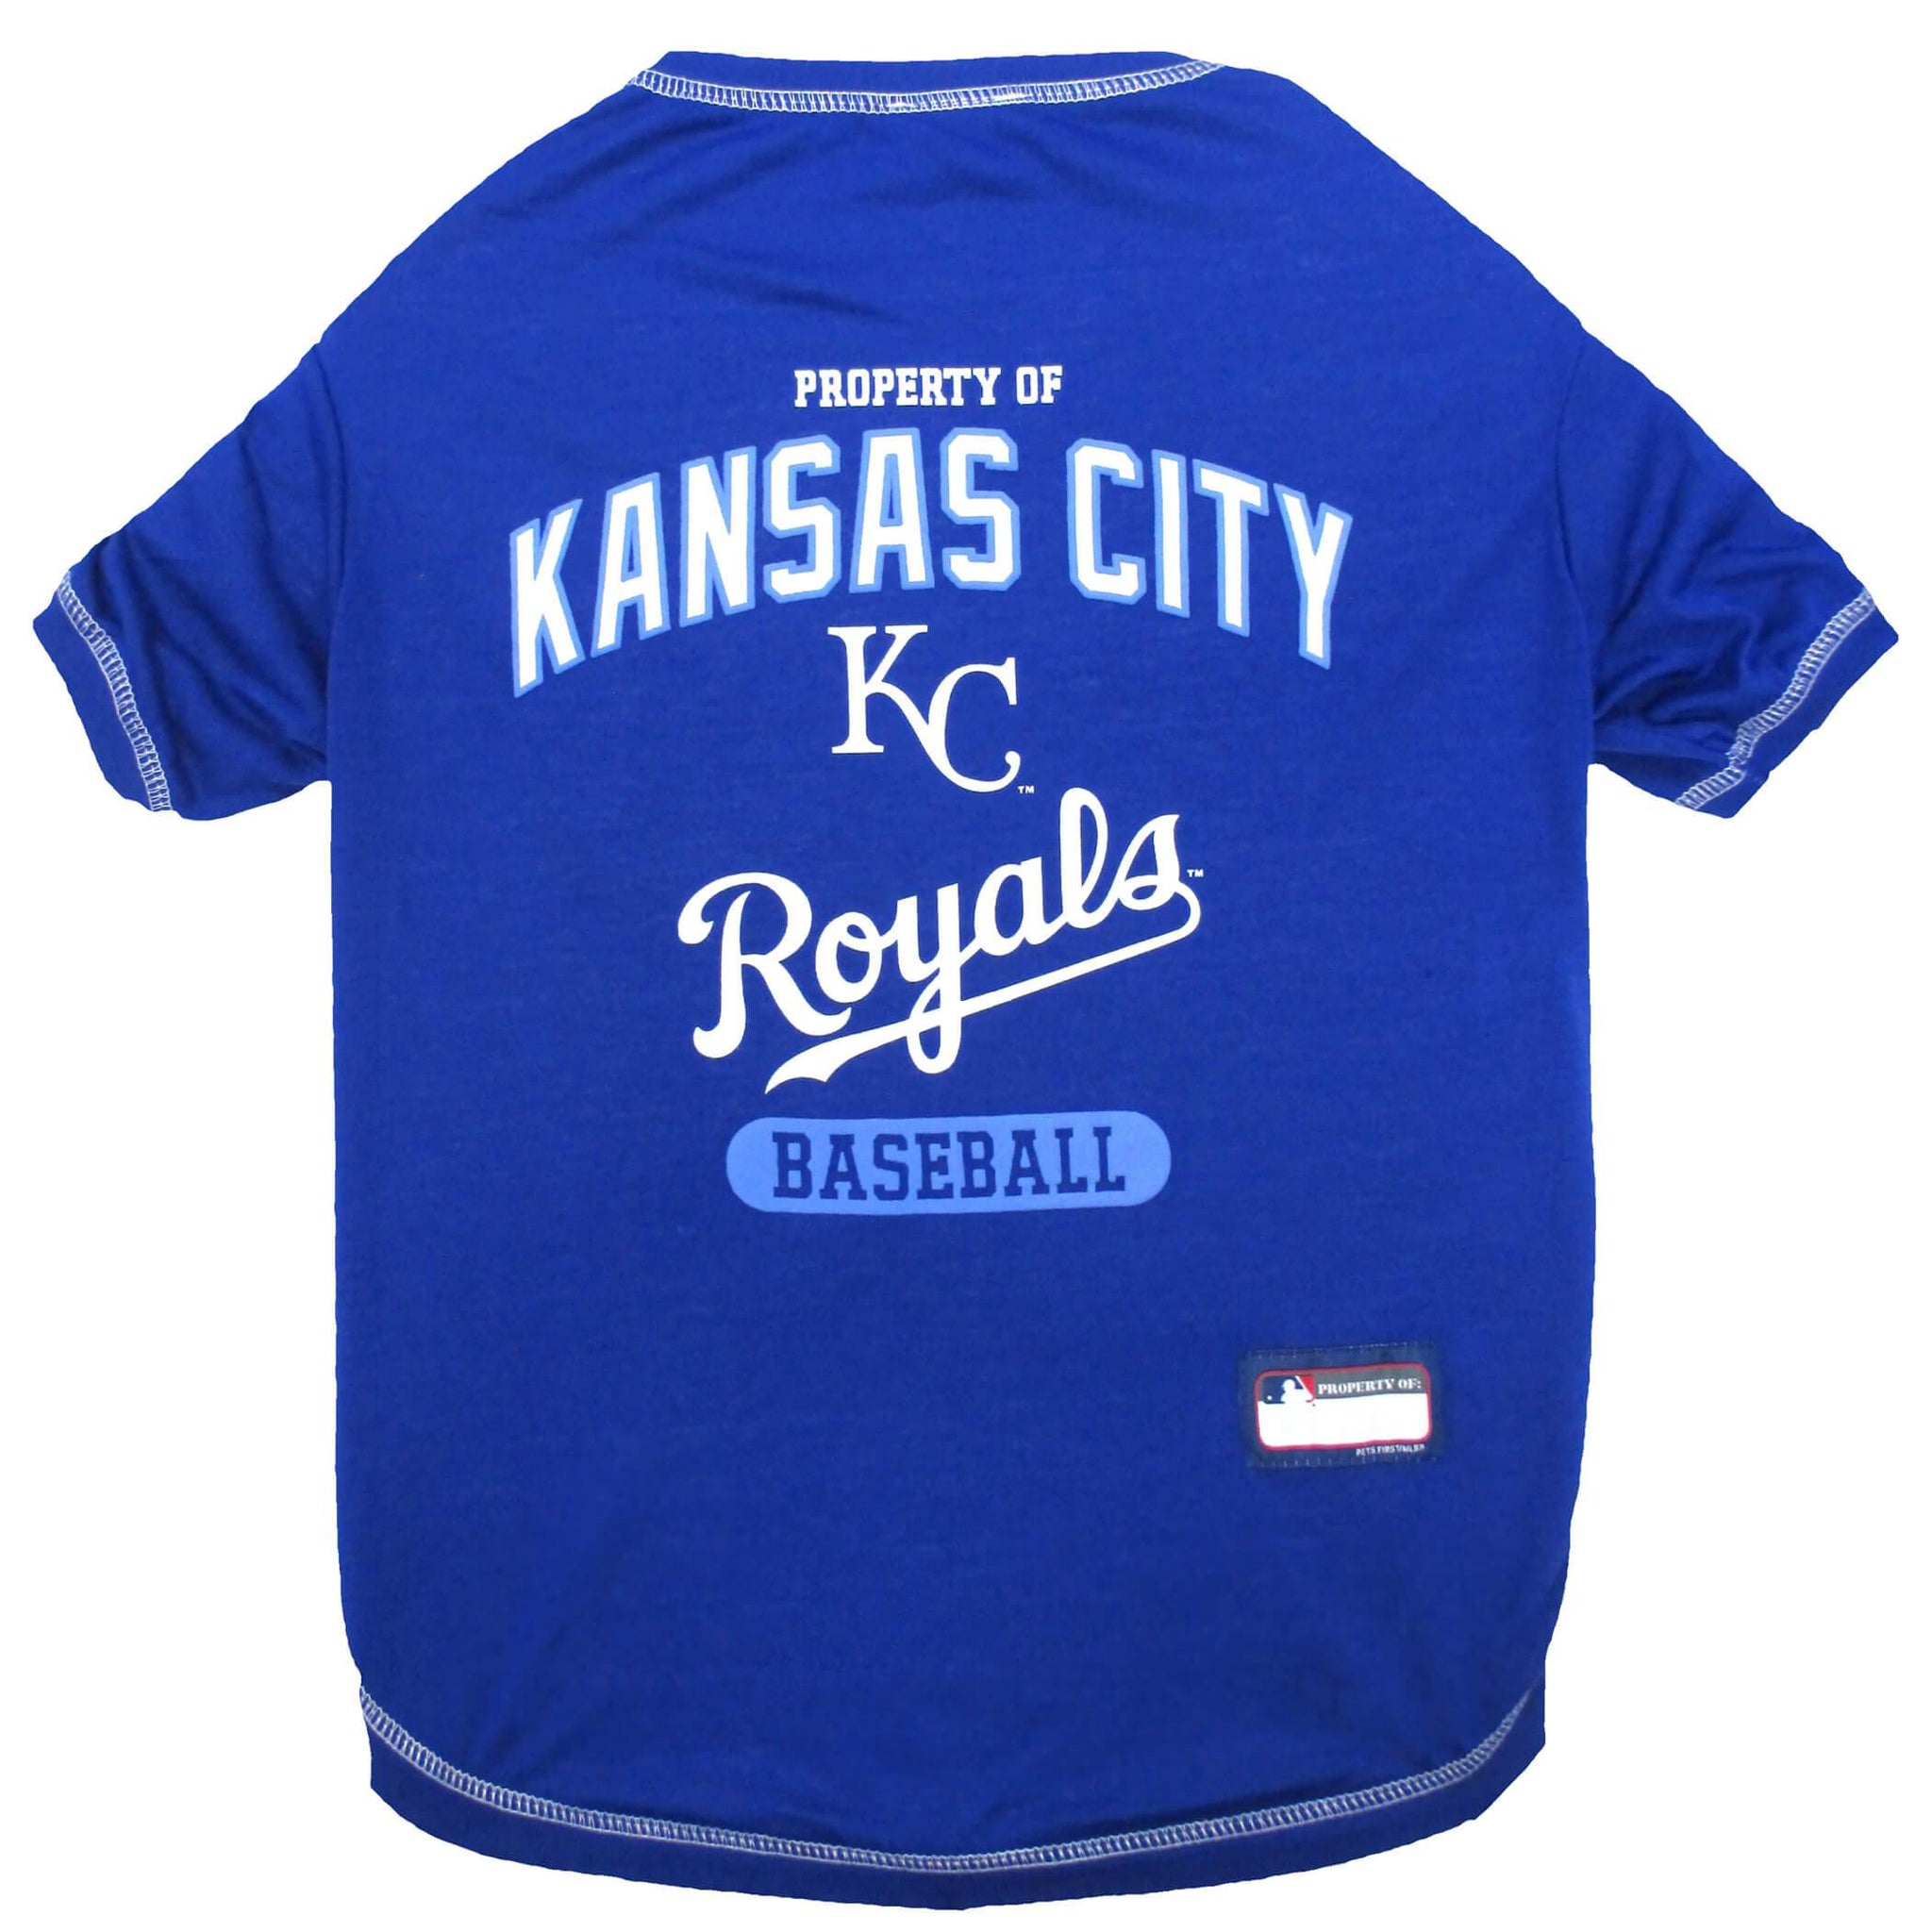 Kansas city Royals Dog Shirt